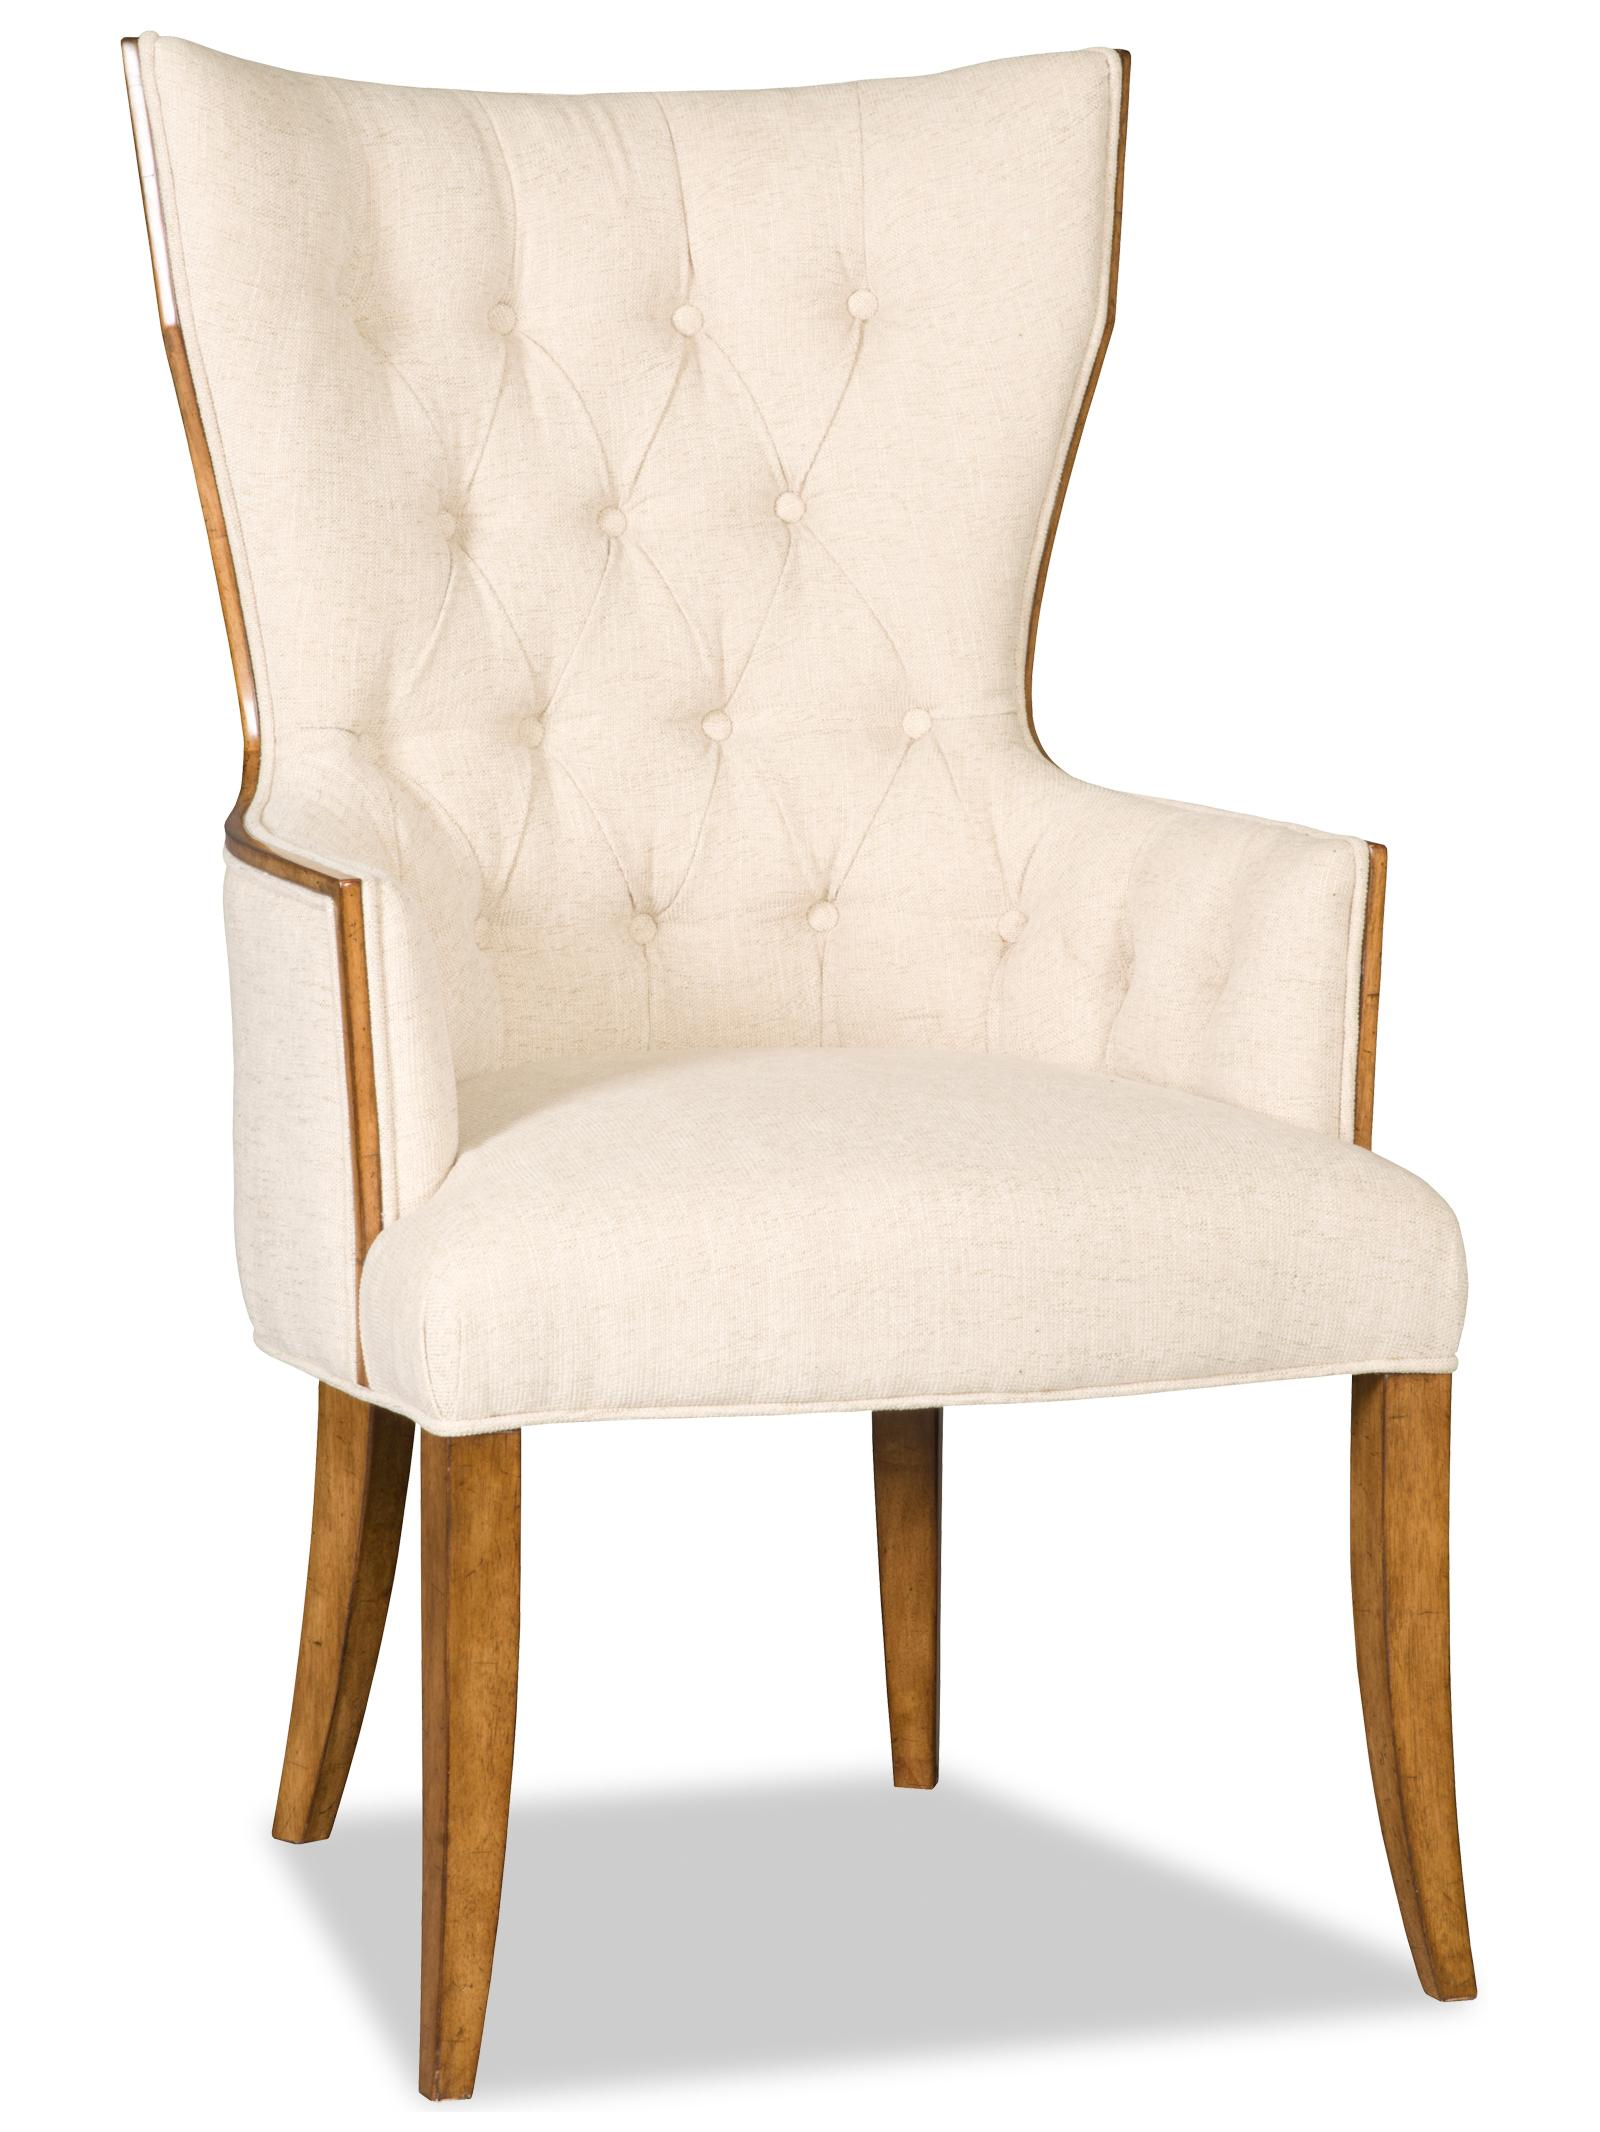 Hooker Furniture Dining Chairs Victoria Dining Arm Chair - Item Number: 300-350050